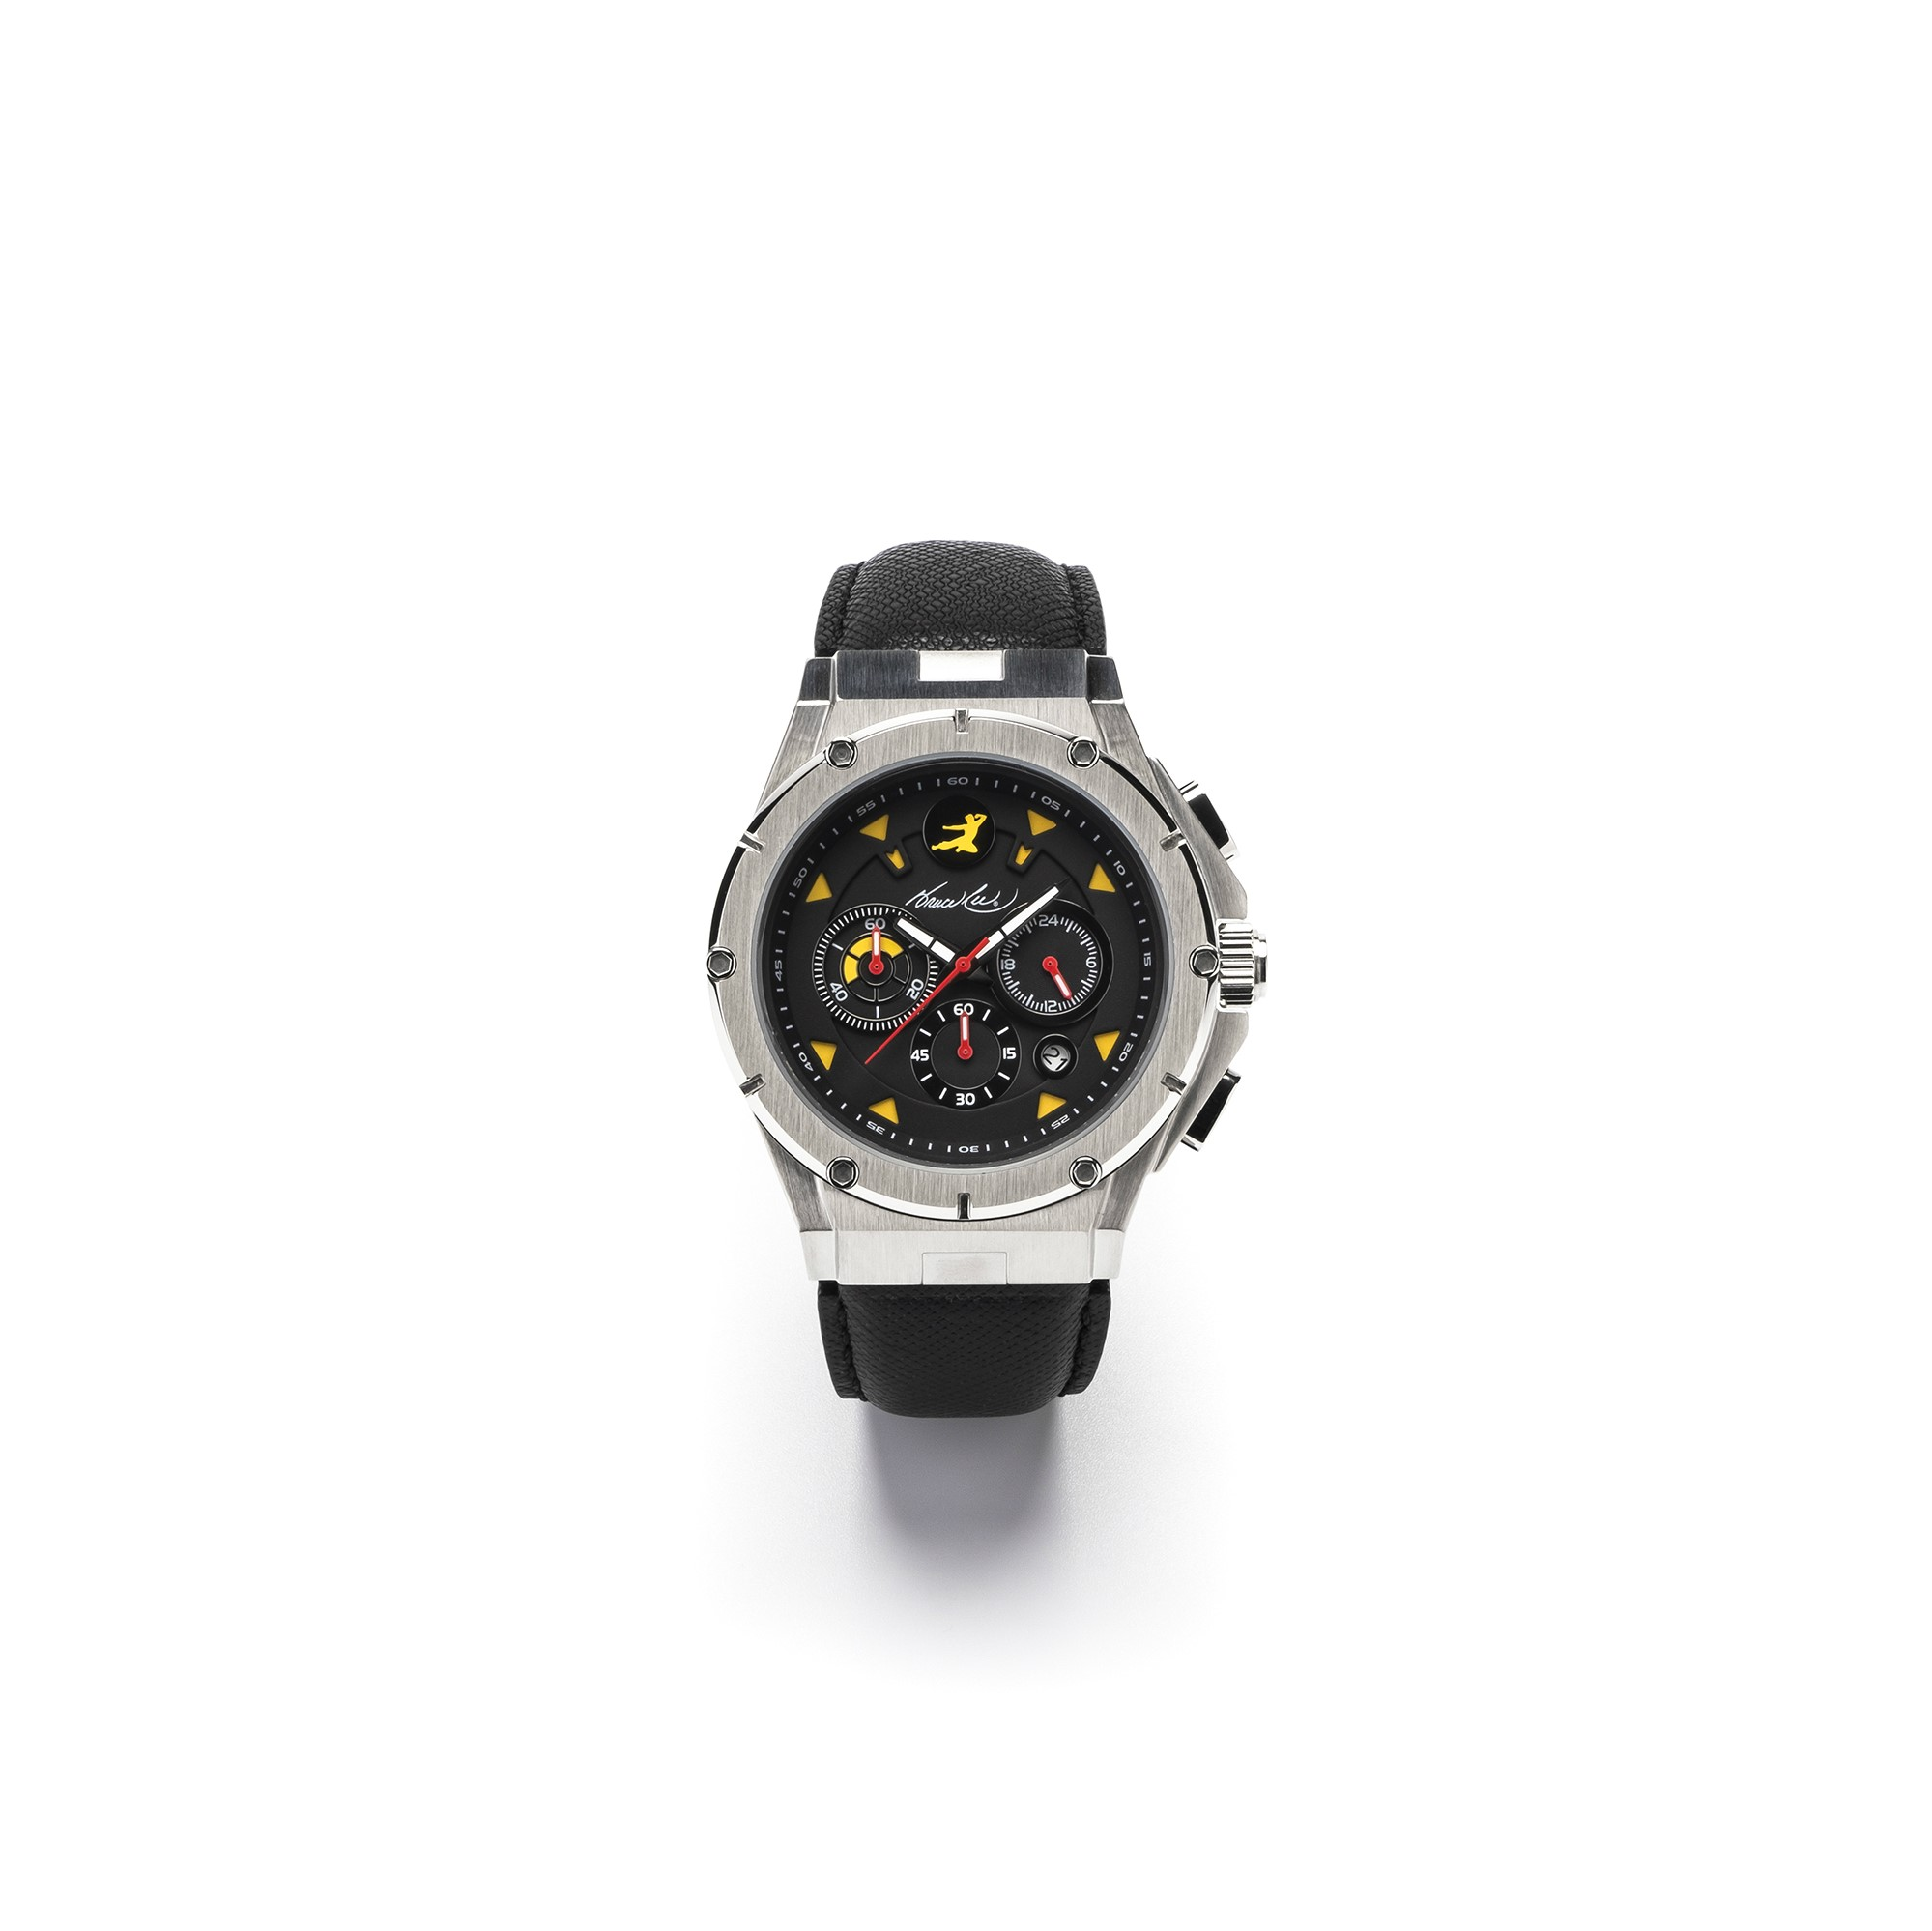 Flying Man Aviator Chronograph Watch